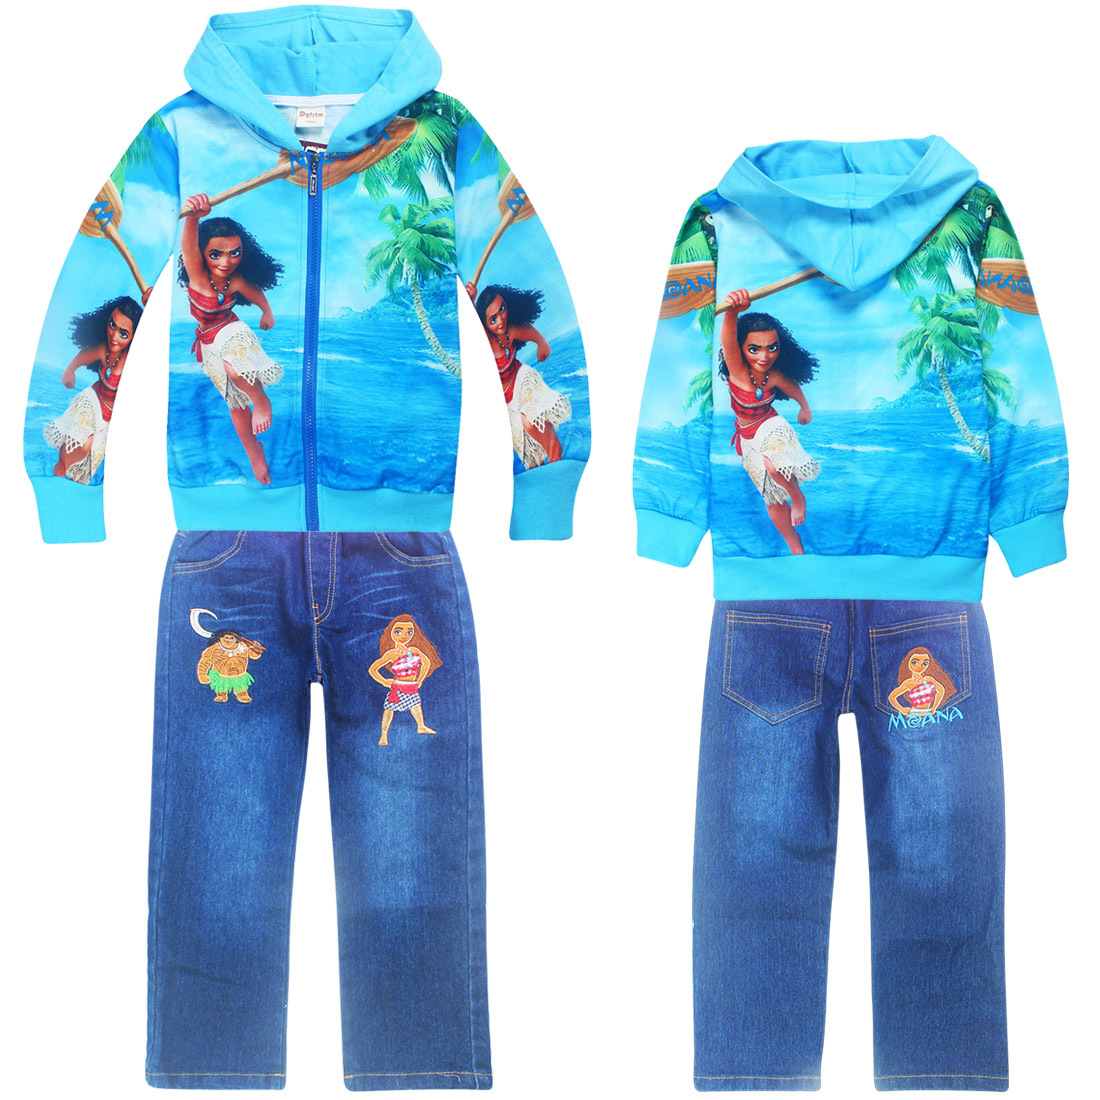 2017 Autumn Winter Children Kids Girls Clothing Sets Jacket Suits Moana Vaiana Baby Girls Zipper Hooded+jeans Pant Clothes Set autumn winter girls children sets clothing long sleeve o neck pullover cartoon dog sweater short pant suit sets for cute girls